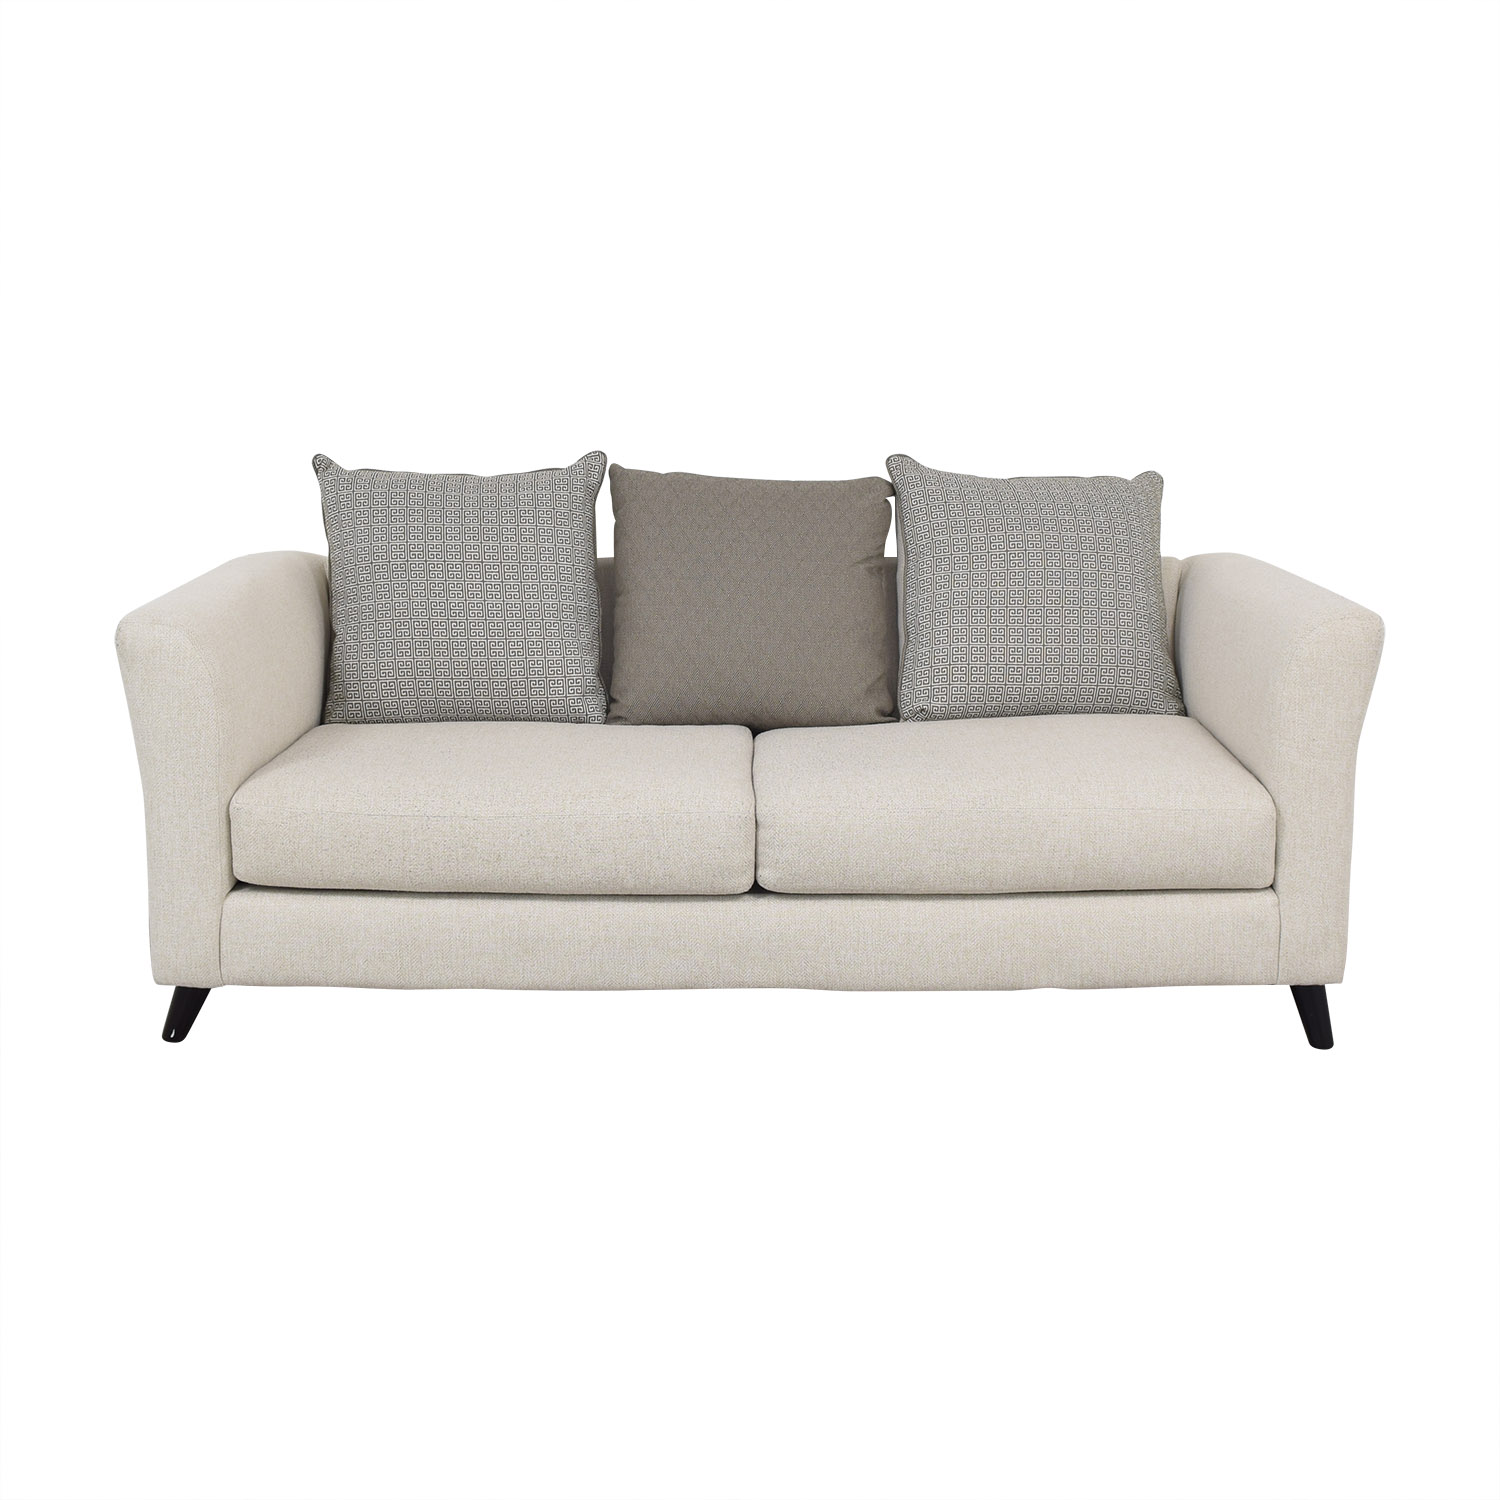 Raymour & Flanigan Raymour & Flanigan Sofa with Pillows coupon